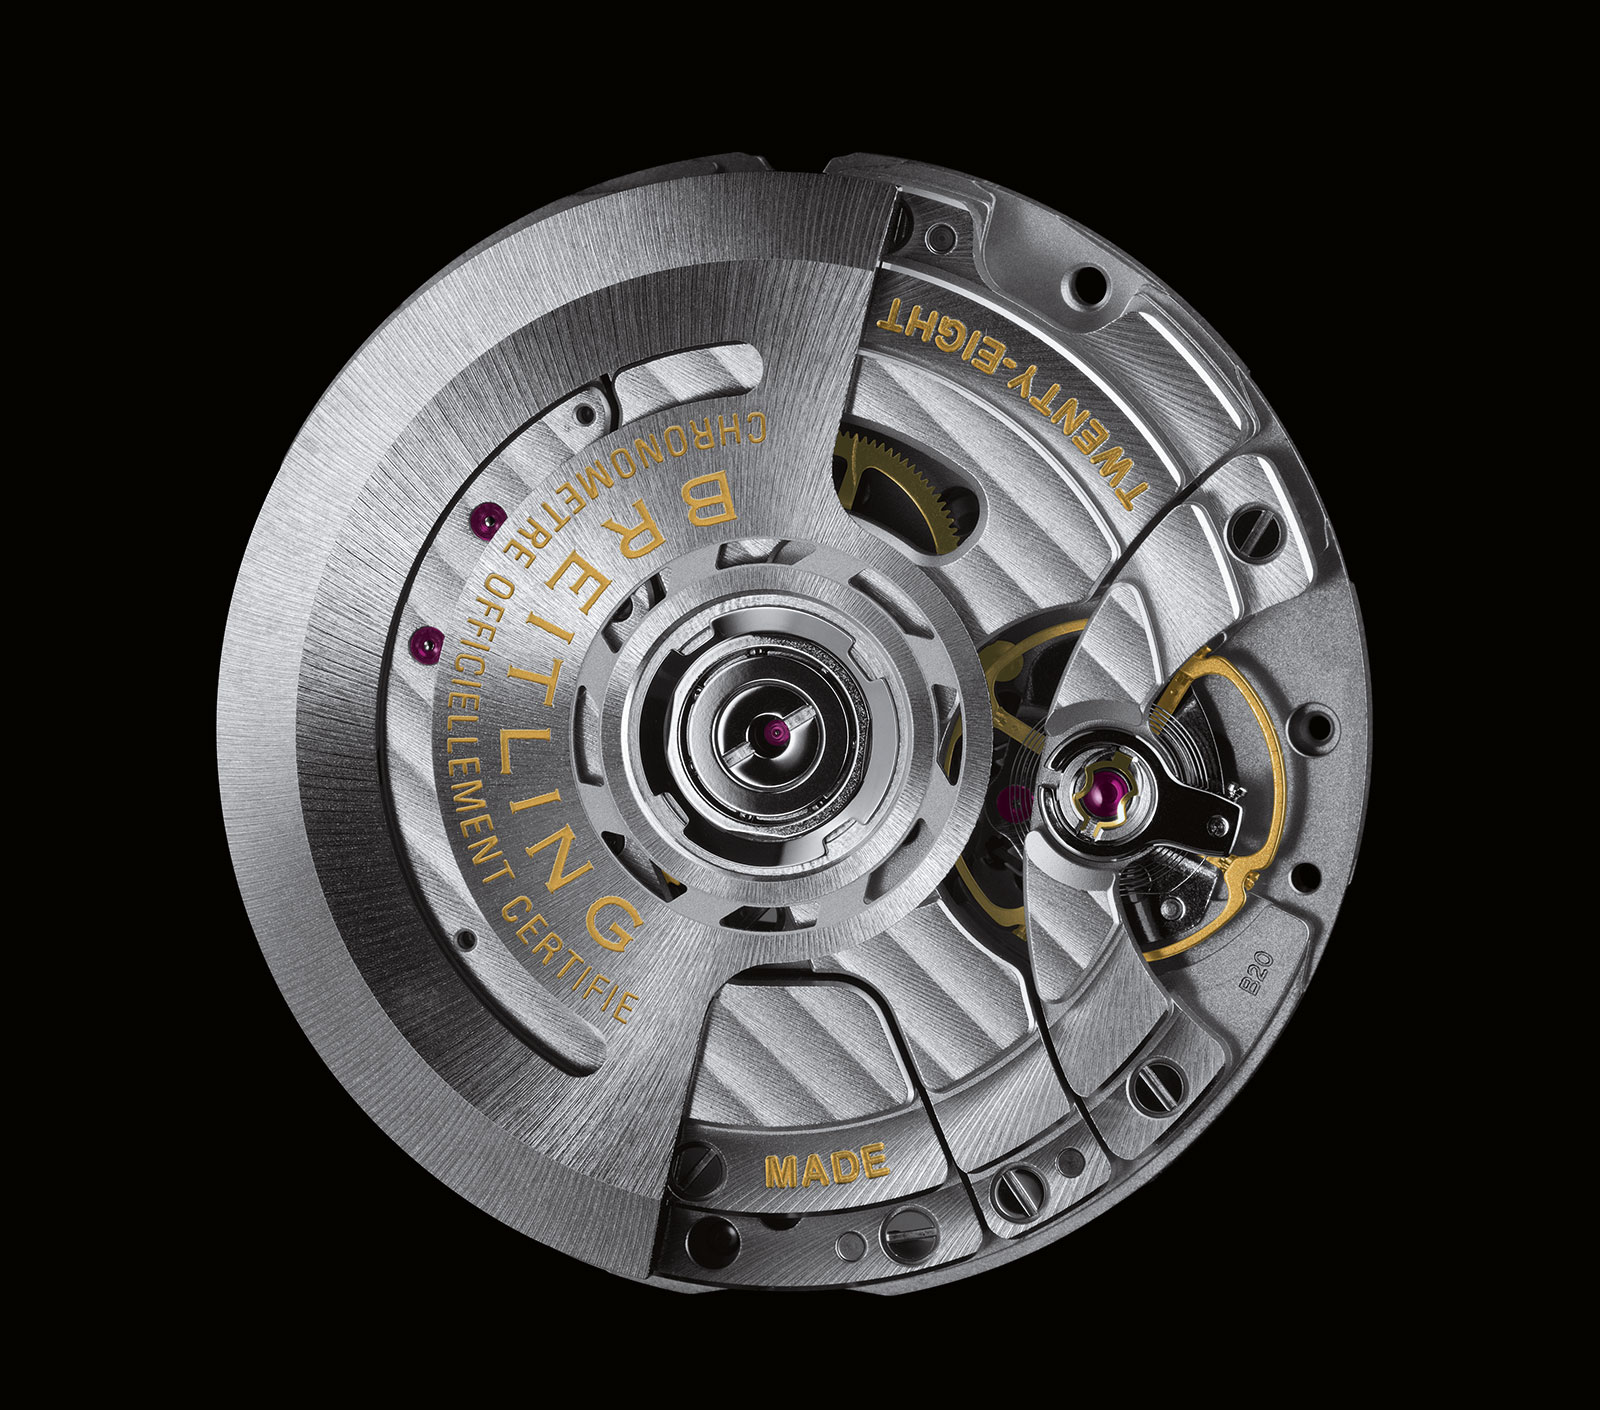 Breitling B20 movement